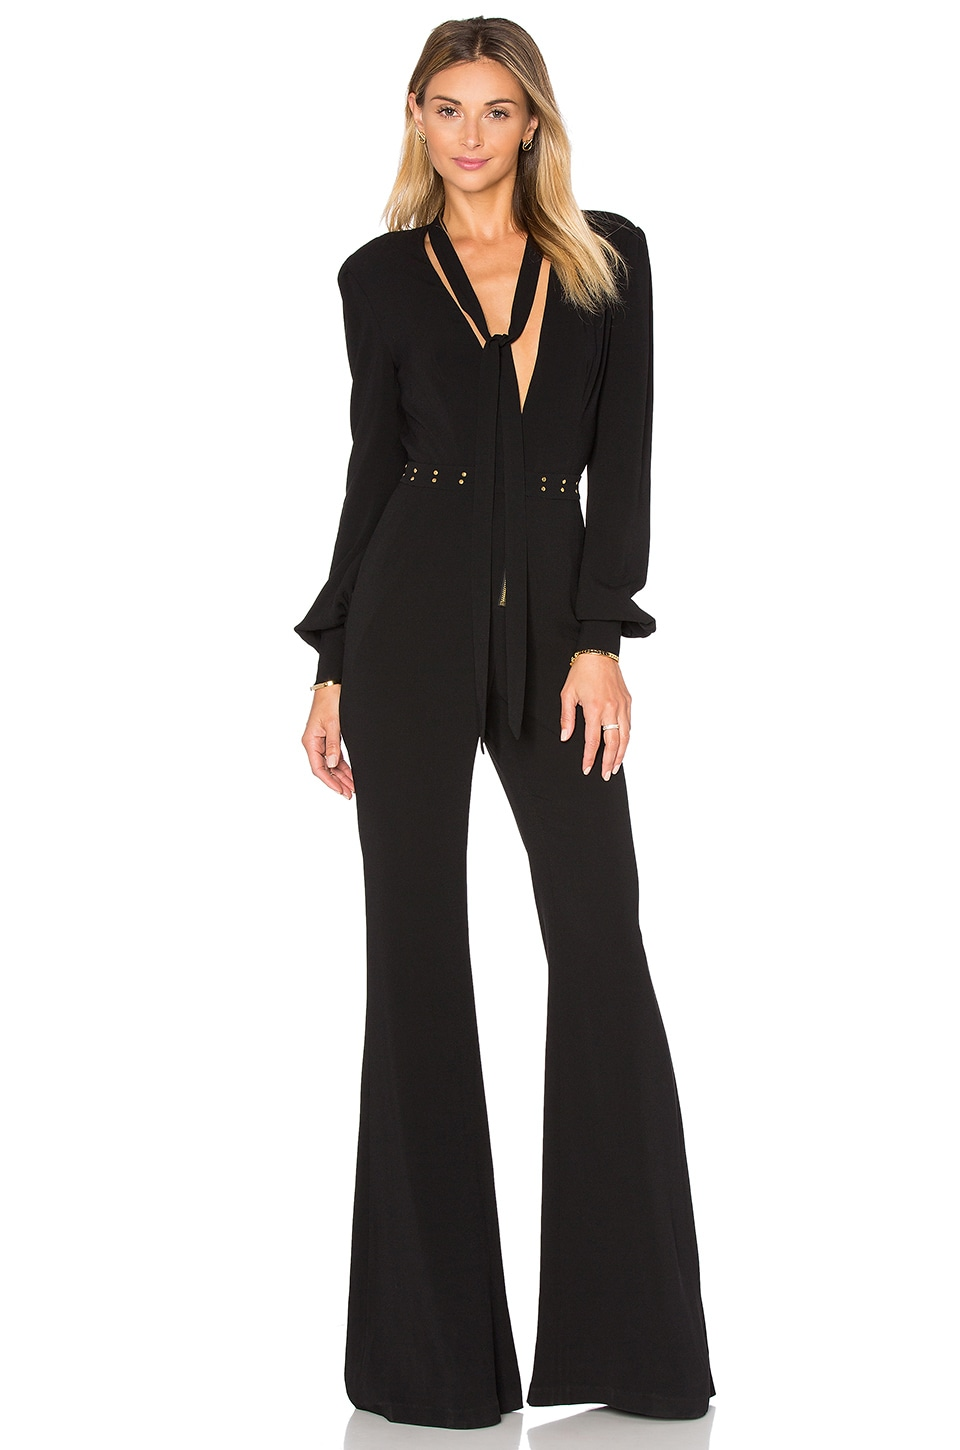 RACHEL ZOE Lindley Jumpsuit in Black